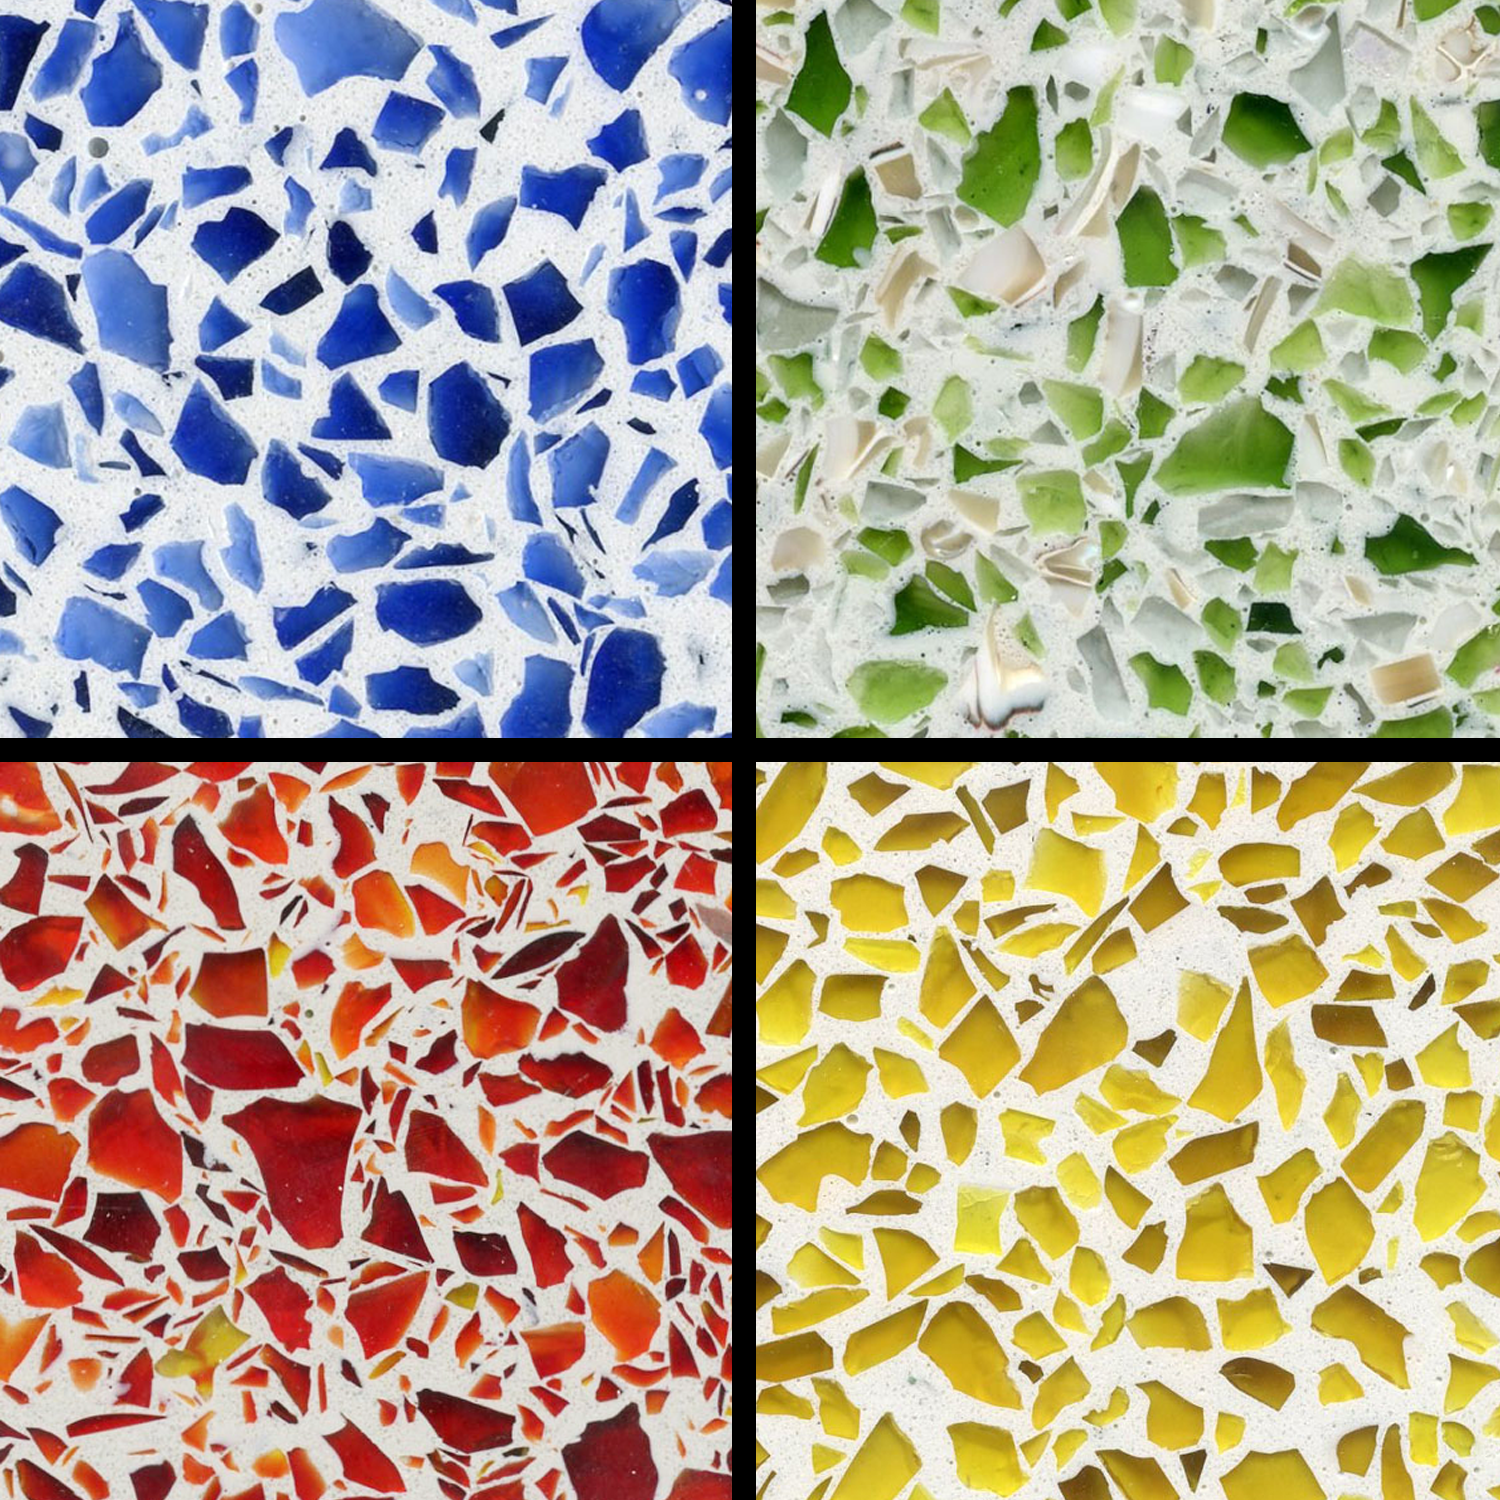 Recycled Glass Provides Vibrant Color Options For Terrazzo